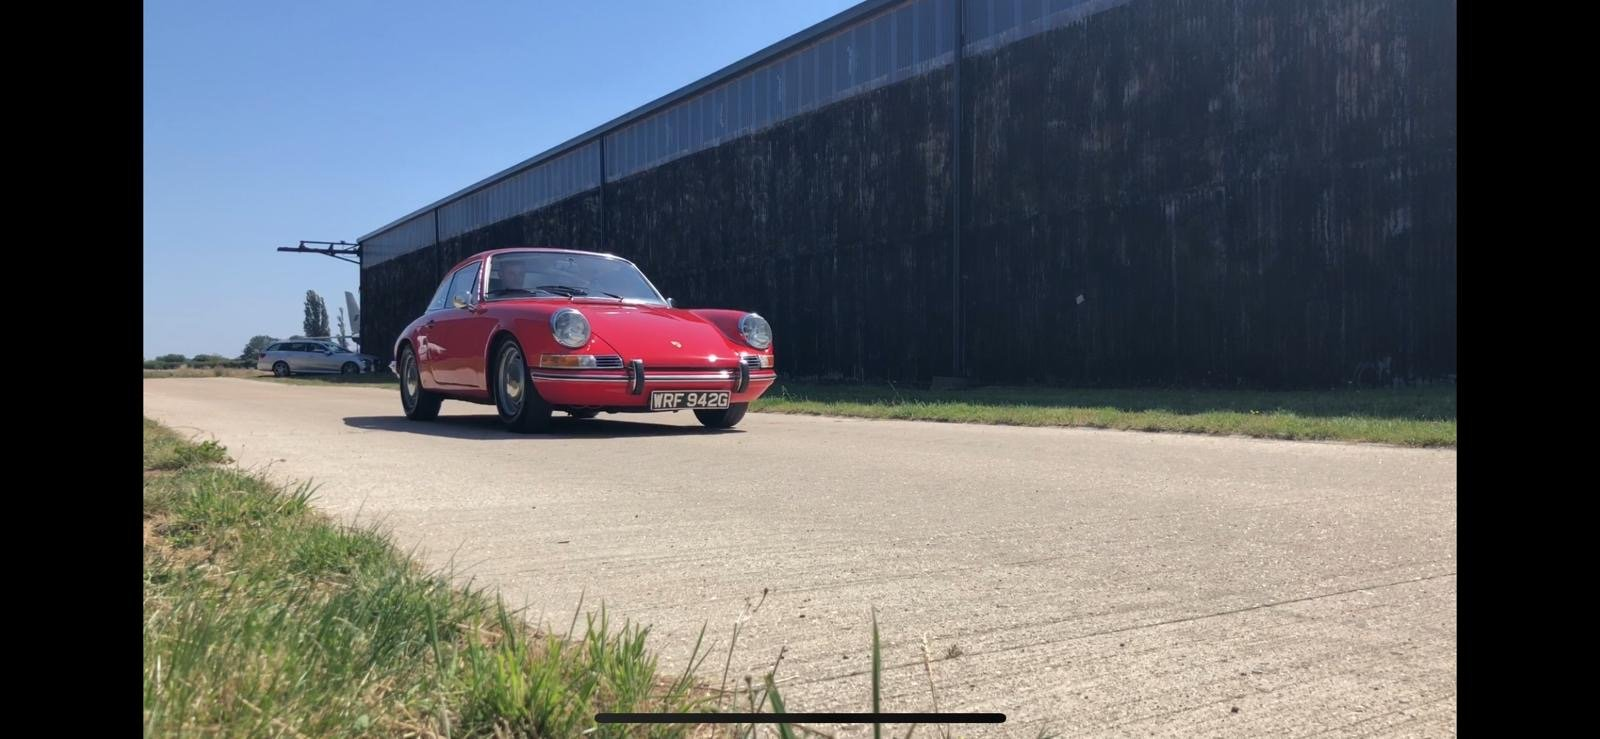 Porsche 911T RHD 1969 Sportamatic Coupe Red For Sale (picture 8 of 9)